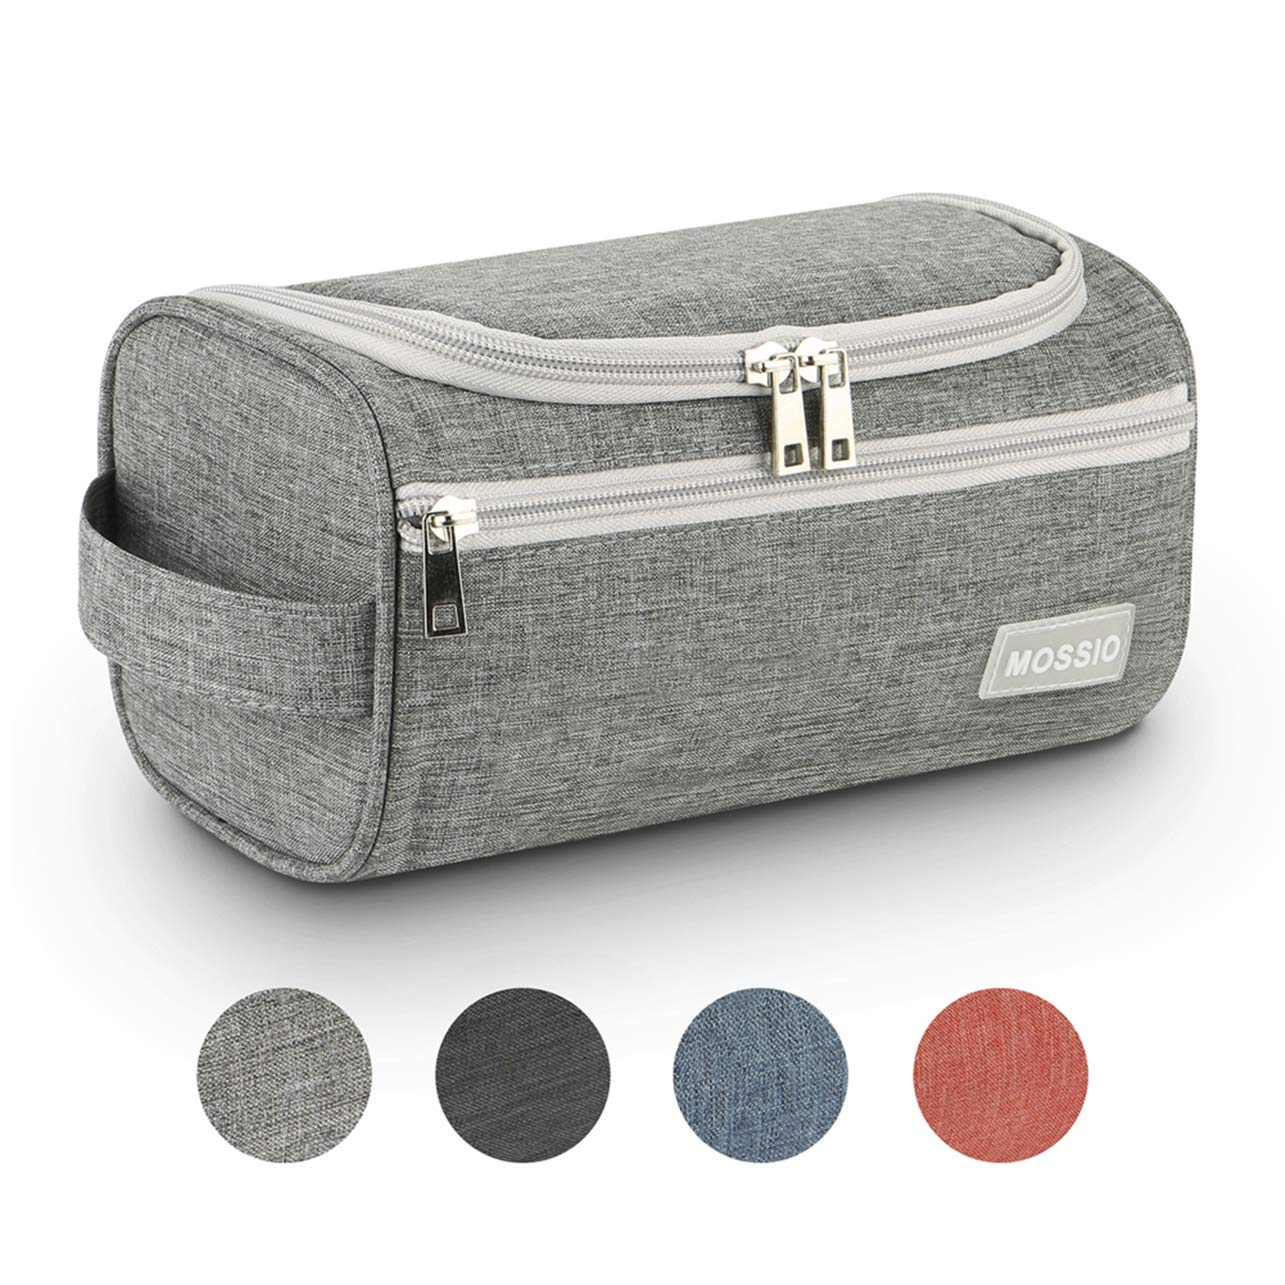 Mossio Hanging Toiletry Bag Large Compact Waterproof Cosmetic Travel Case Bathroom Shaving Kit